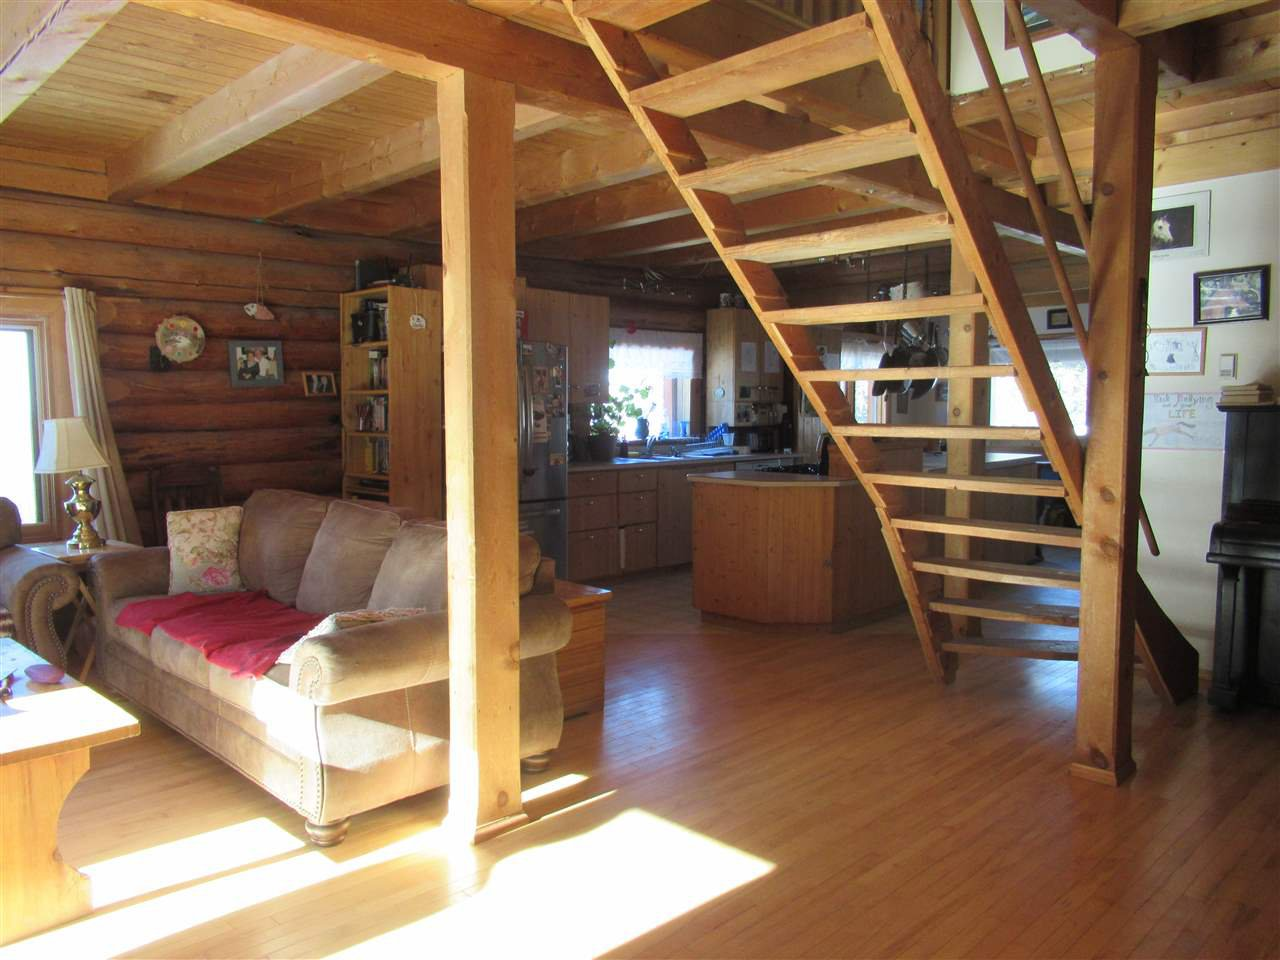 Photo 6: Photos: 3750 PARADISE Drive in Williams Lake: Williams Lake - Rural East House for sale (Williams Lake (Zone 27))  : MLS®# R2350243